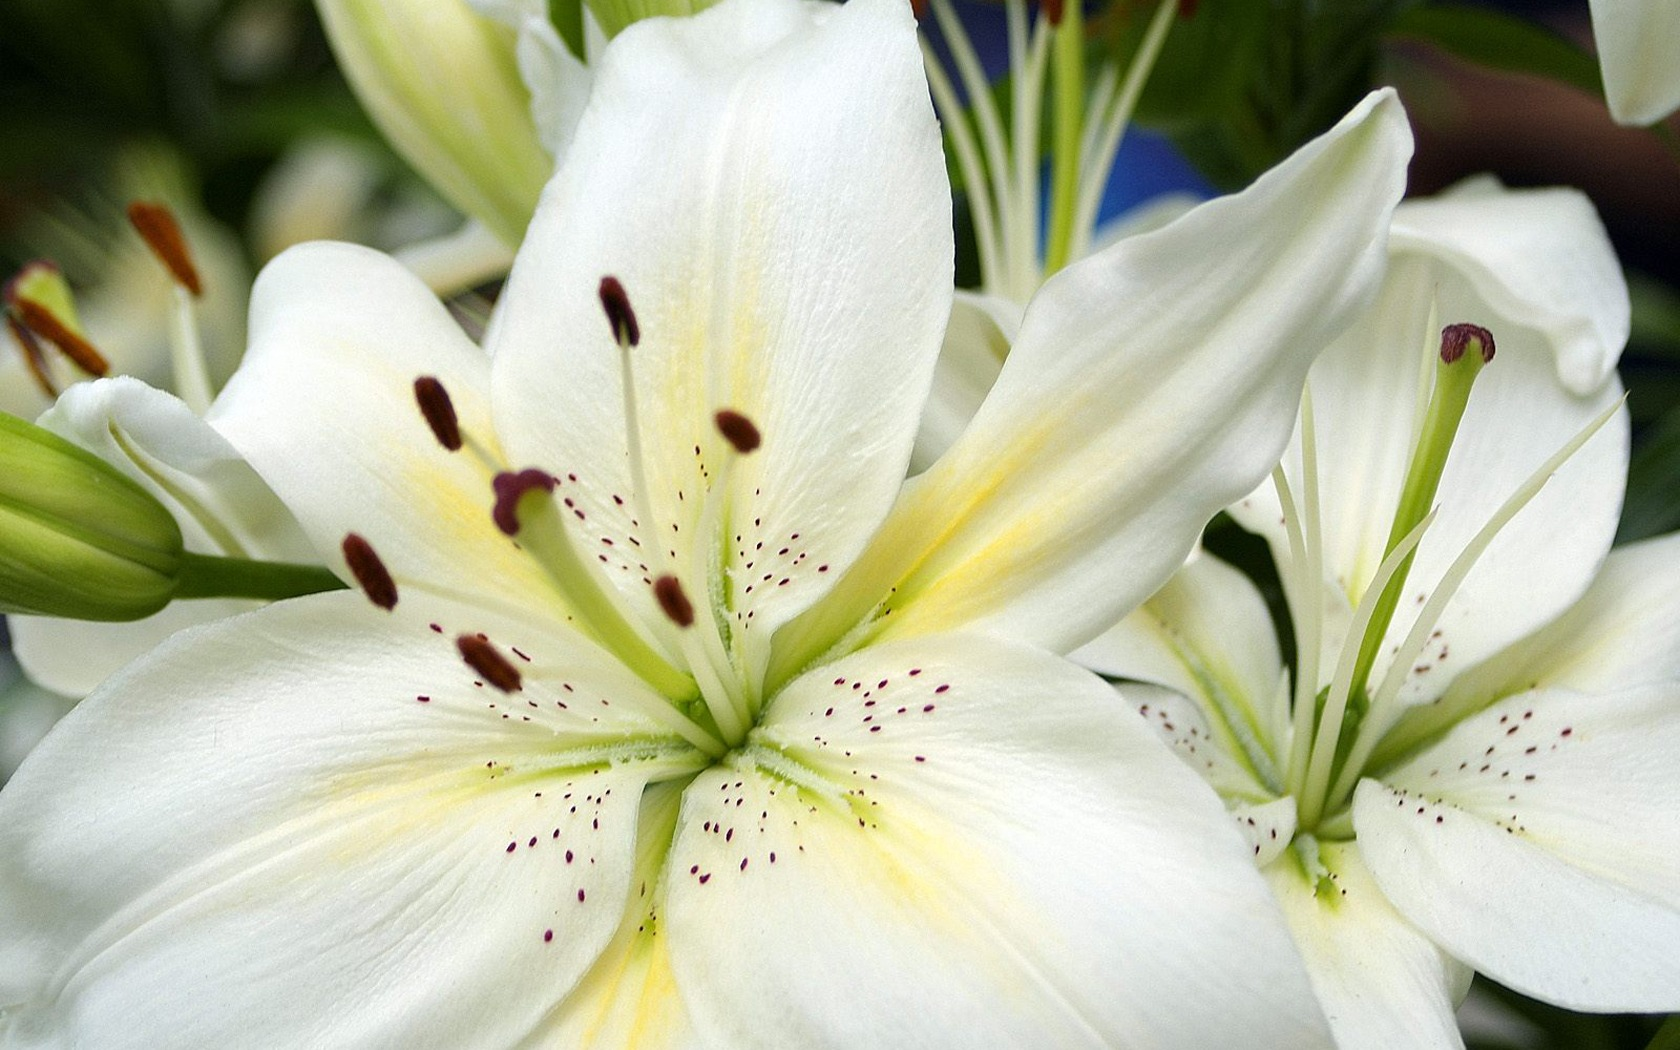 White lilies wallpaper flowers nature wallpapers in jpg format for white lilies wallpaper flowers nature wallpapers mightylinksfo